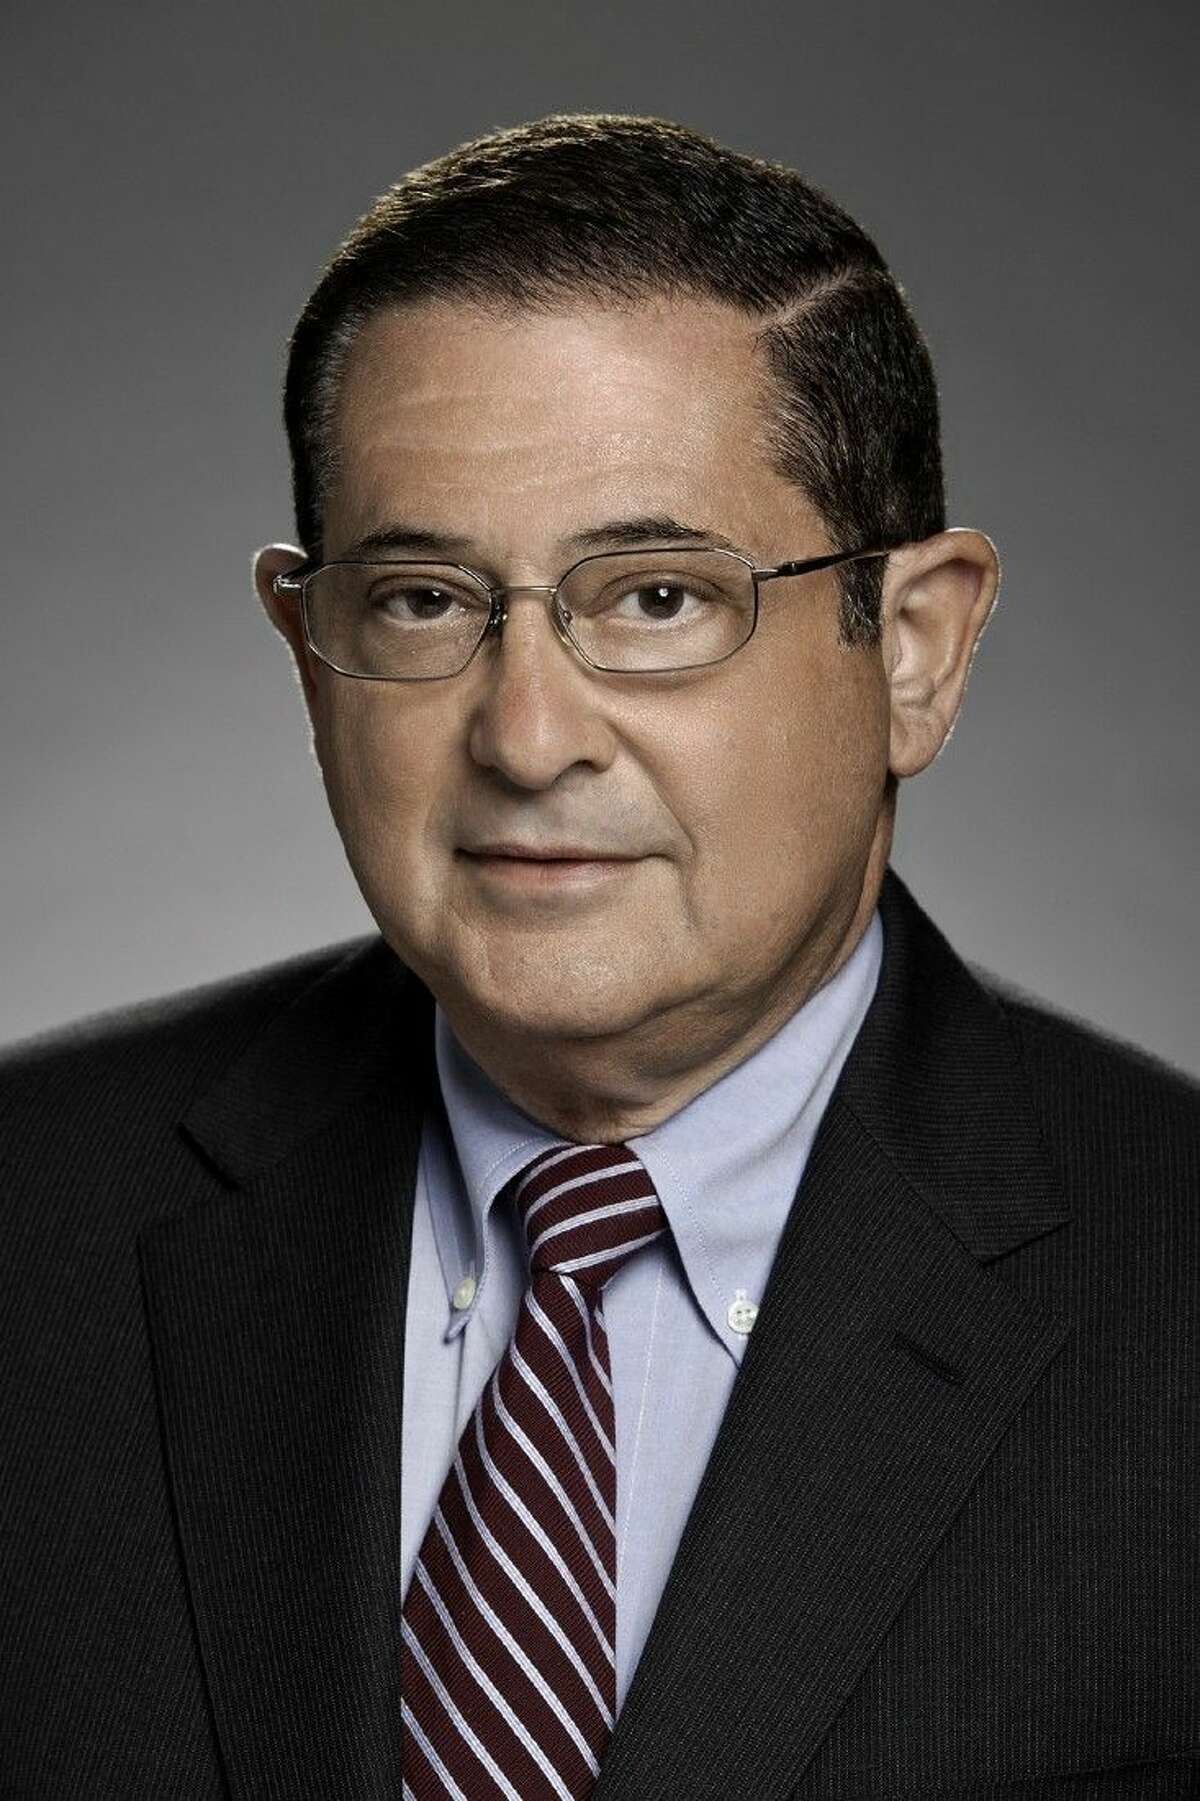 M. Michael Shabot, MD; Executive Vice President and Chief Clinical Officer for Memorial Hermann Health System.